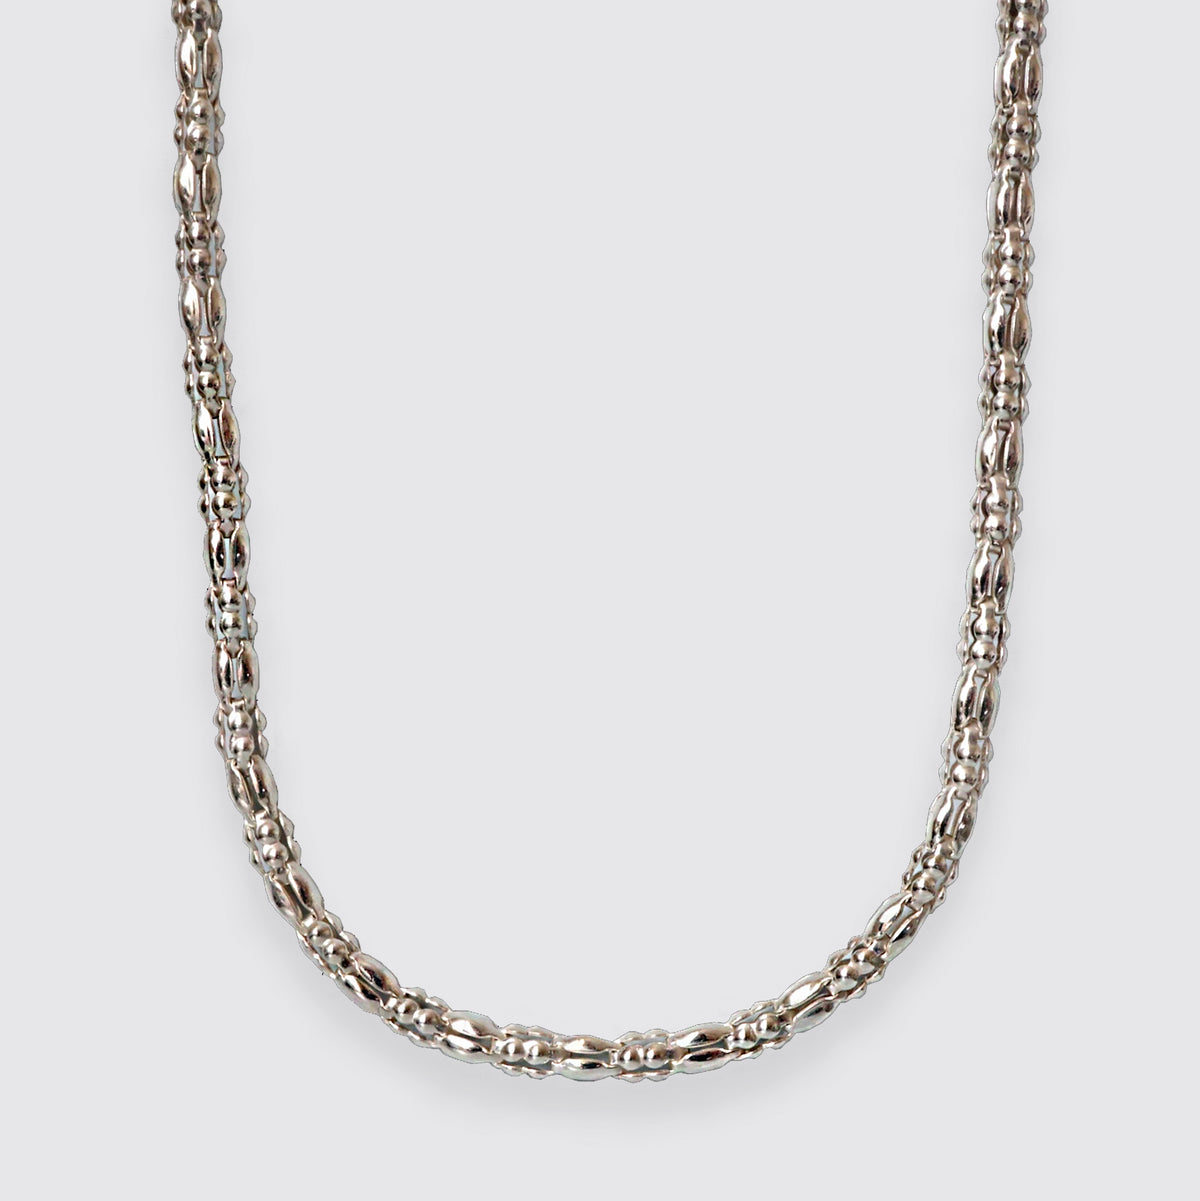 Wheat Chain Necklace, 1.8mm